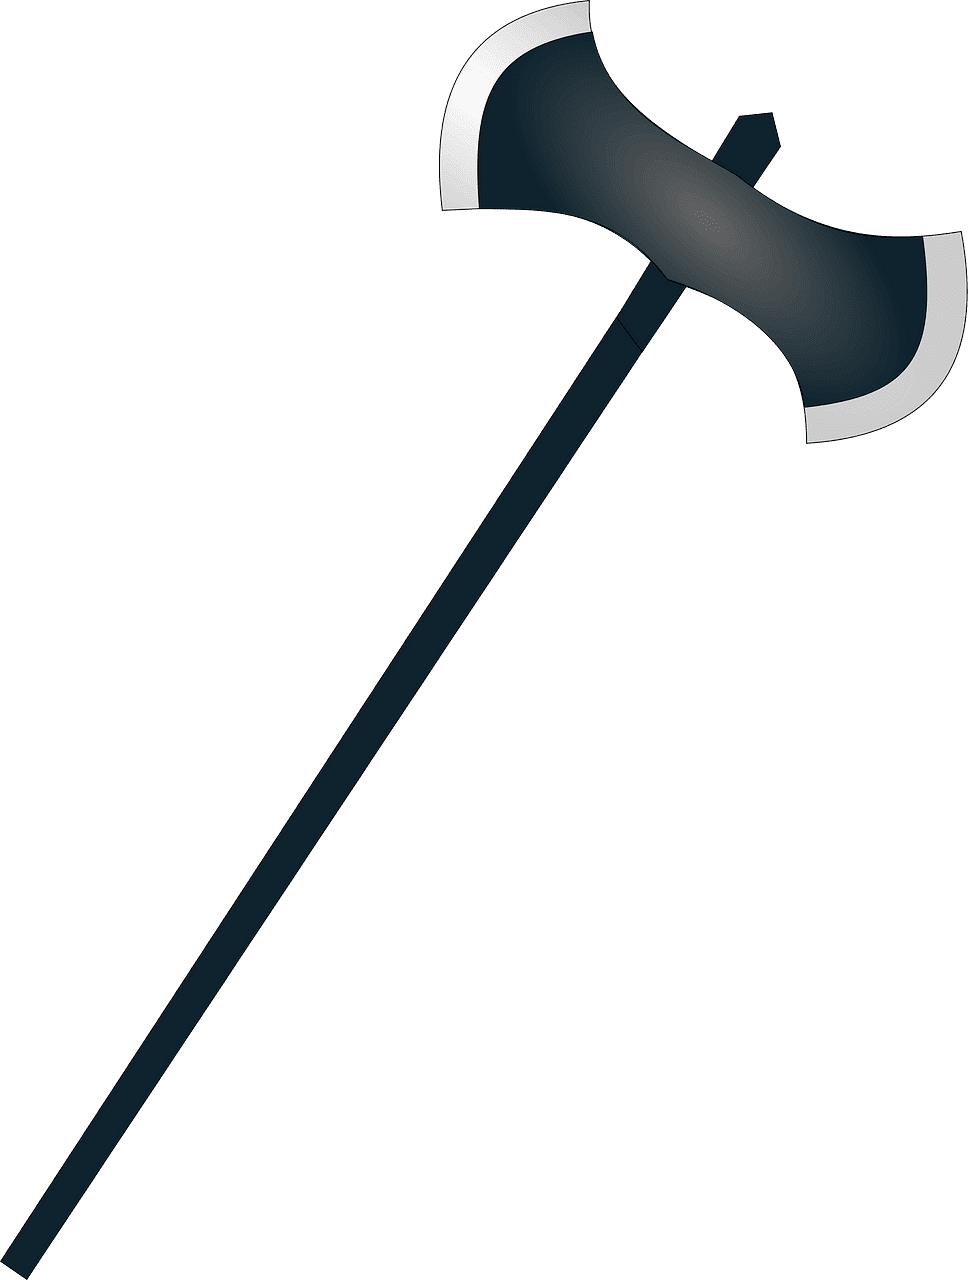 Axe clipart transparent background 3